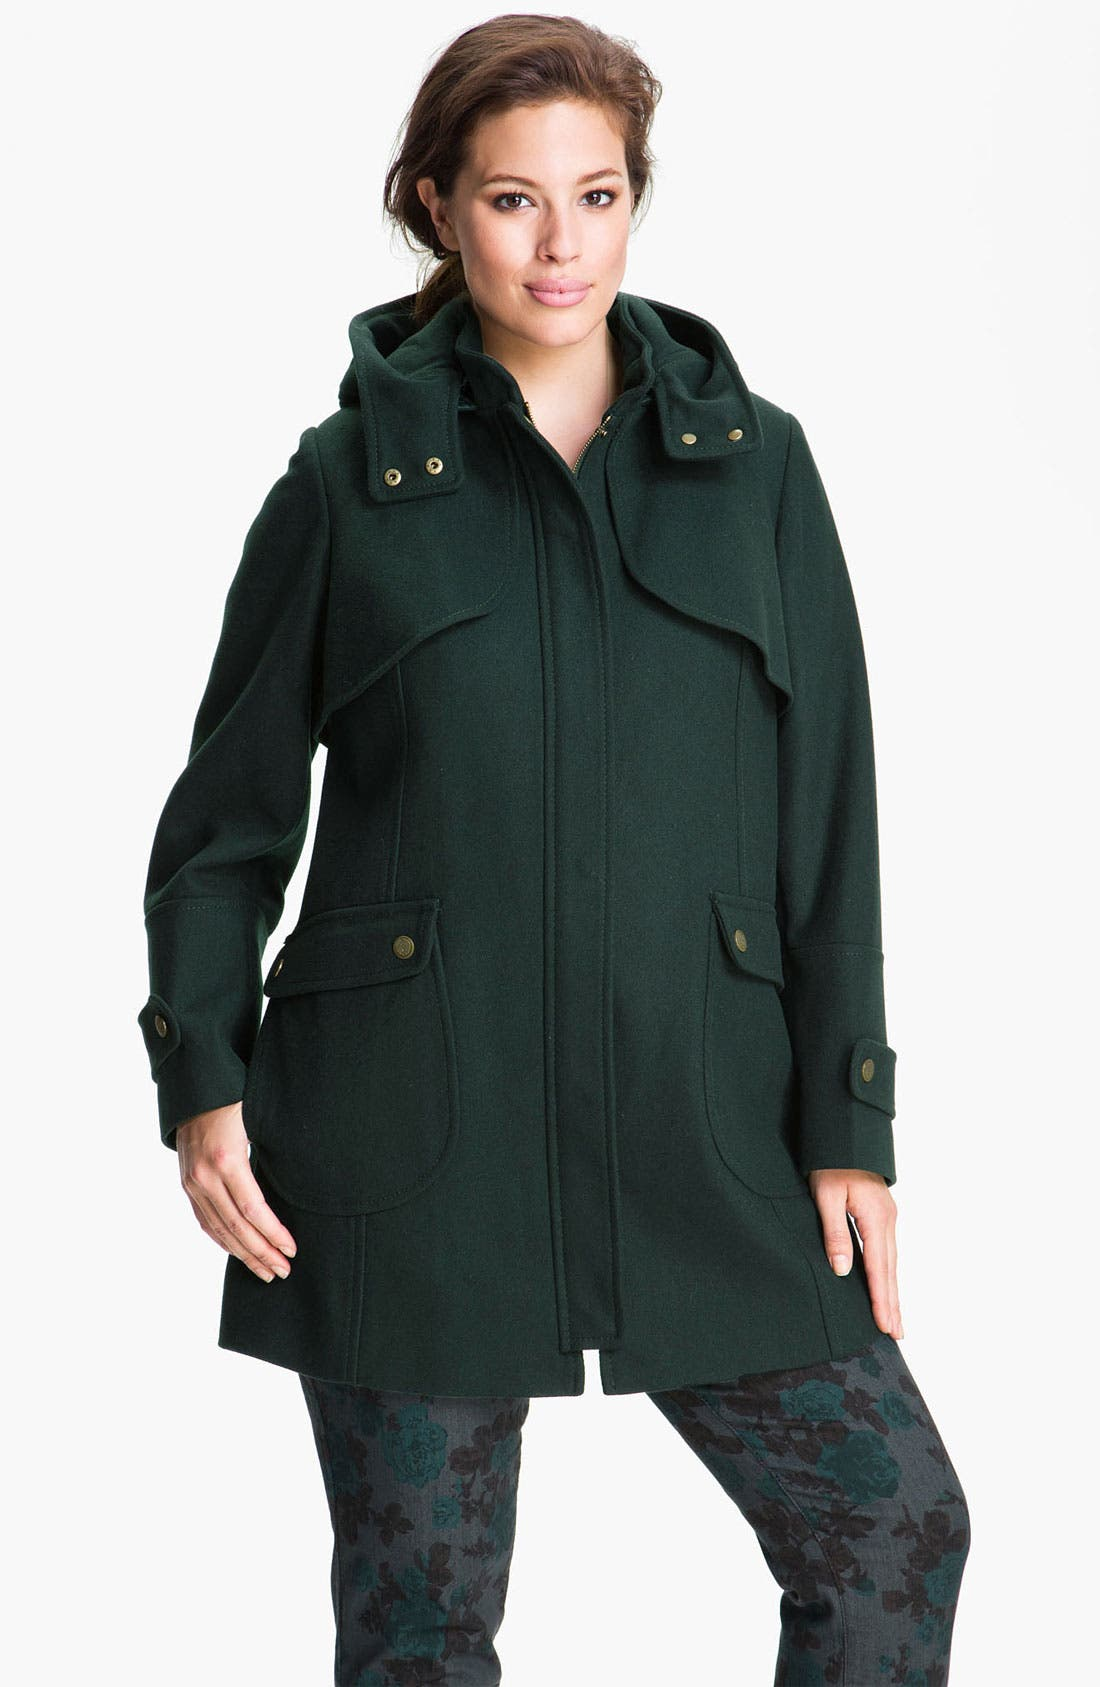 Wool Blend Jacket with Detachable Hood,                         Main,                         color, Forest